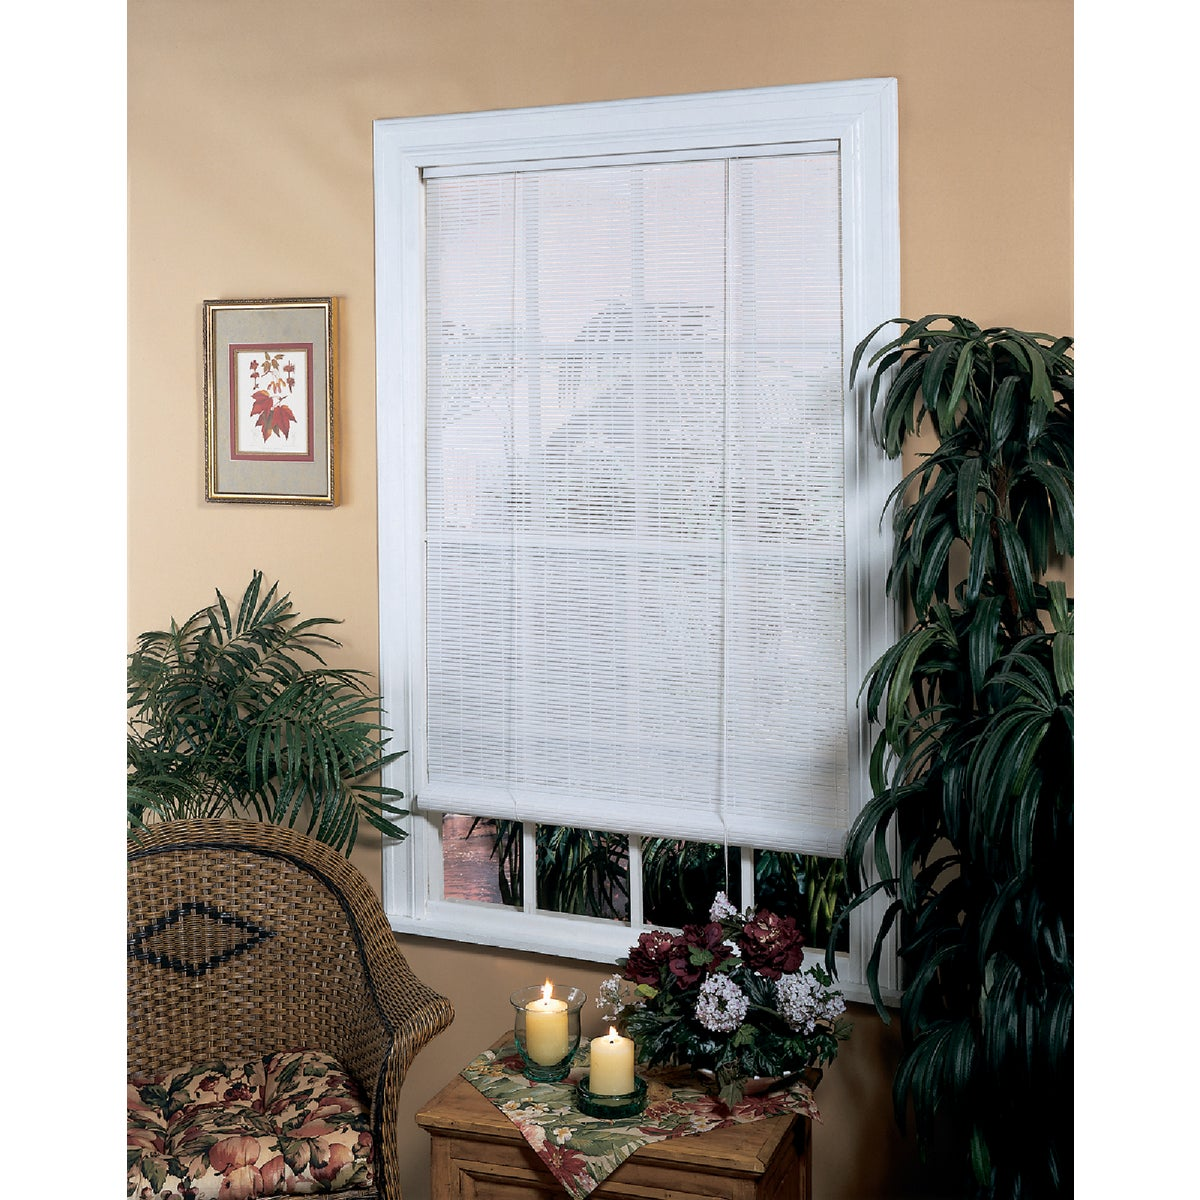 72X72 WHT ROLL-UP BLIND